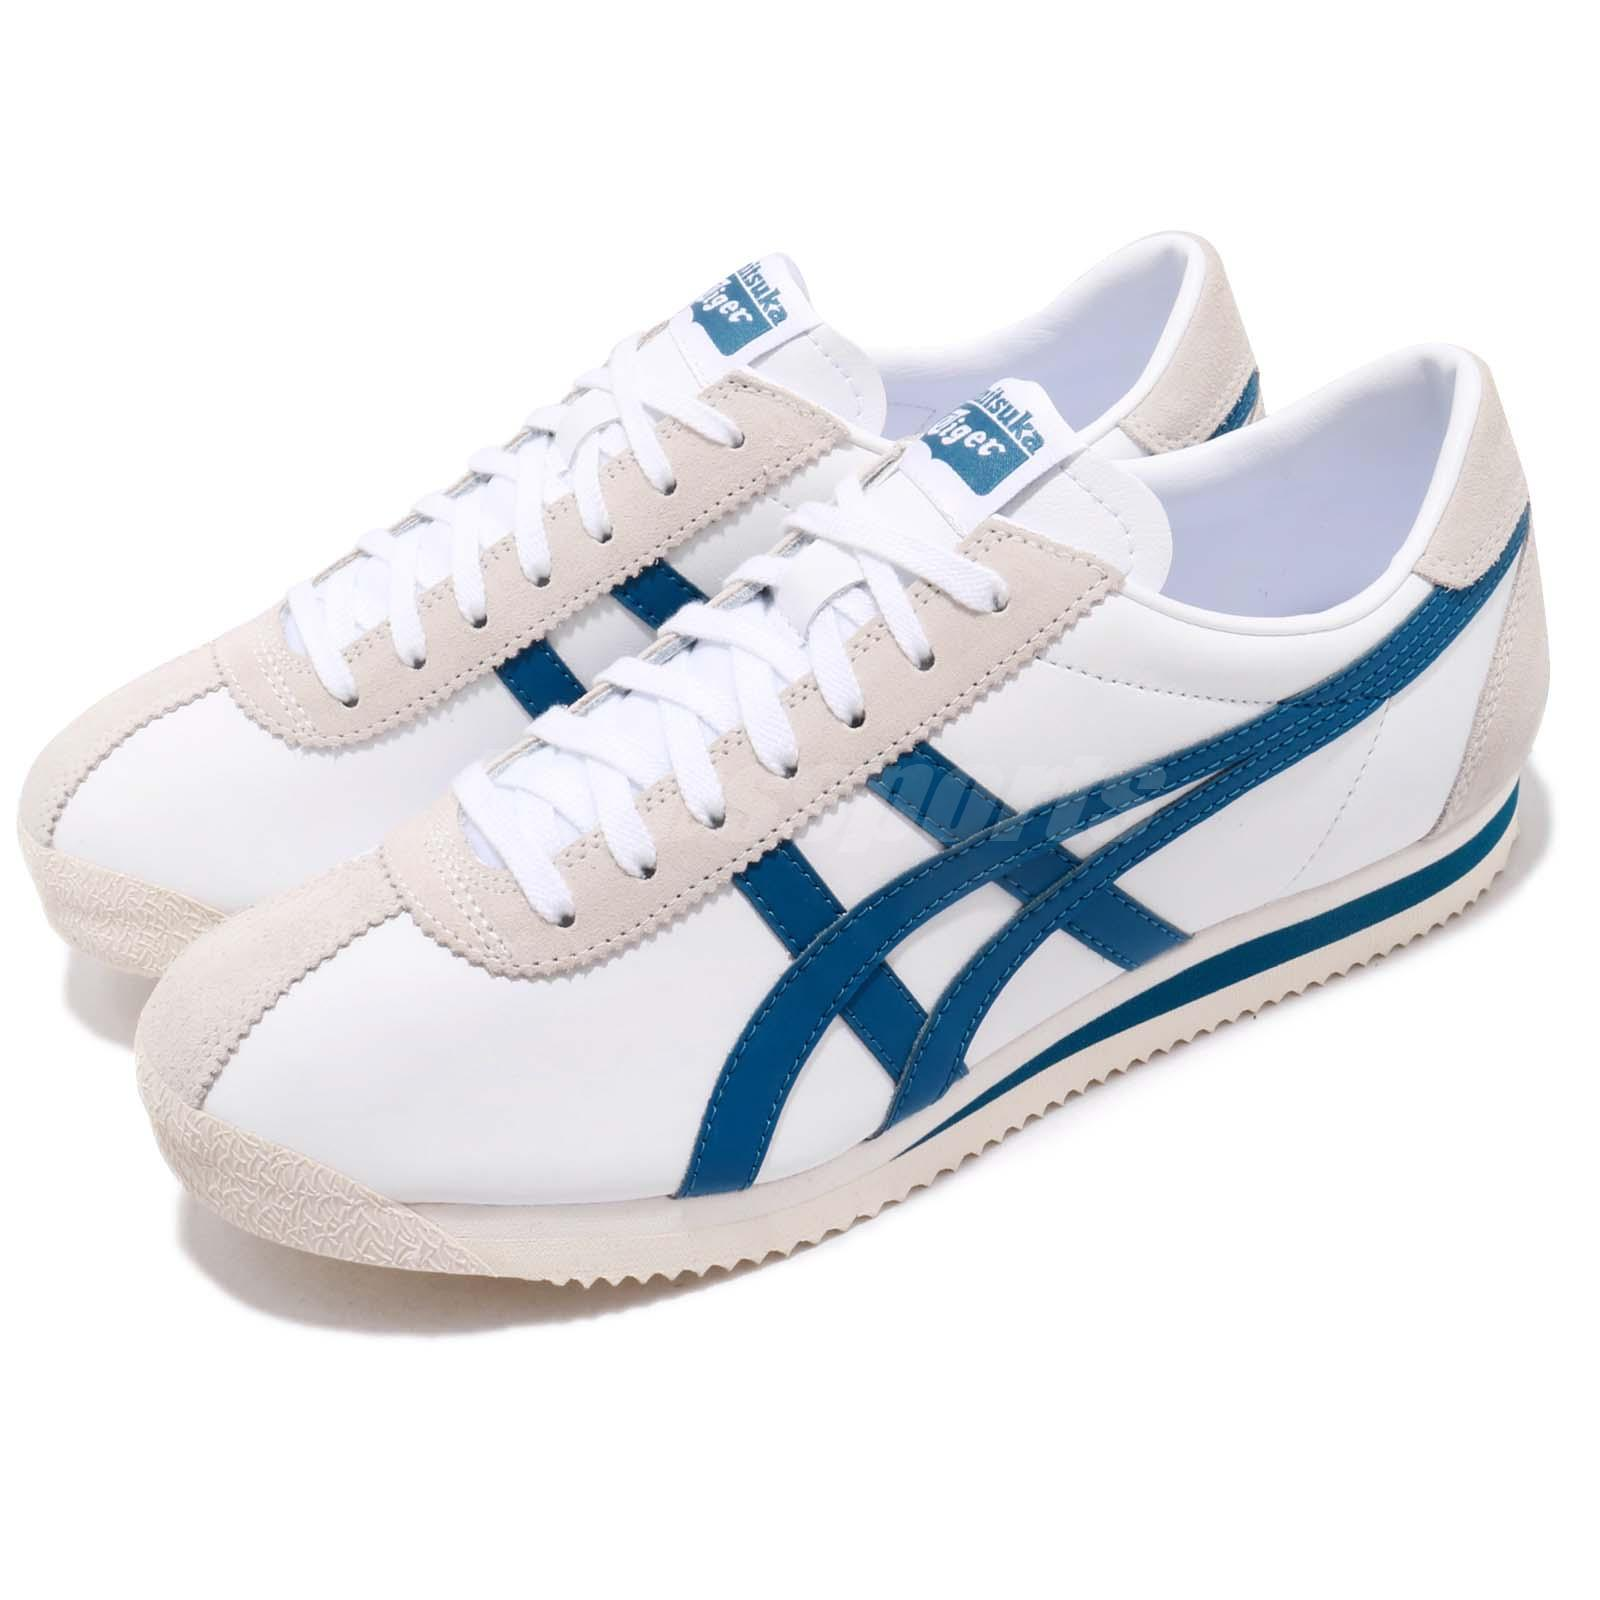 ee3bcceb Details about Asics Onitsuka Tiger Corsair White Deep Sapphire Men Running  Shoes D7J4L-100